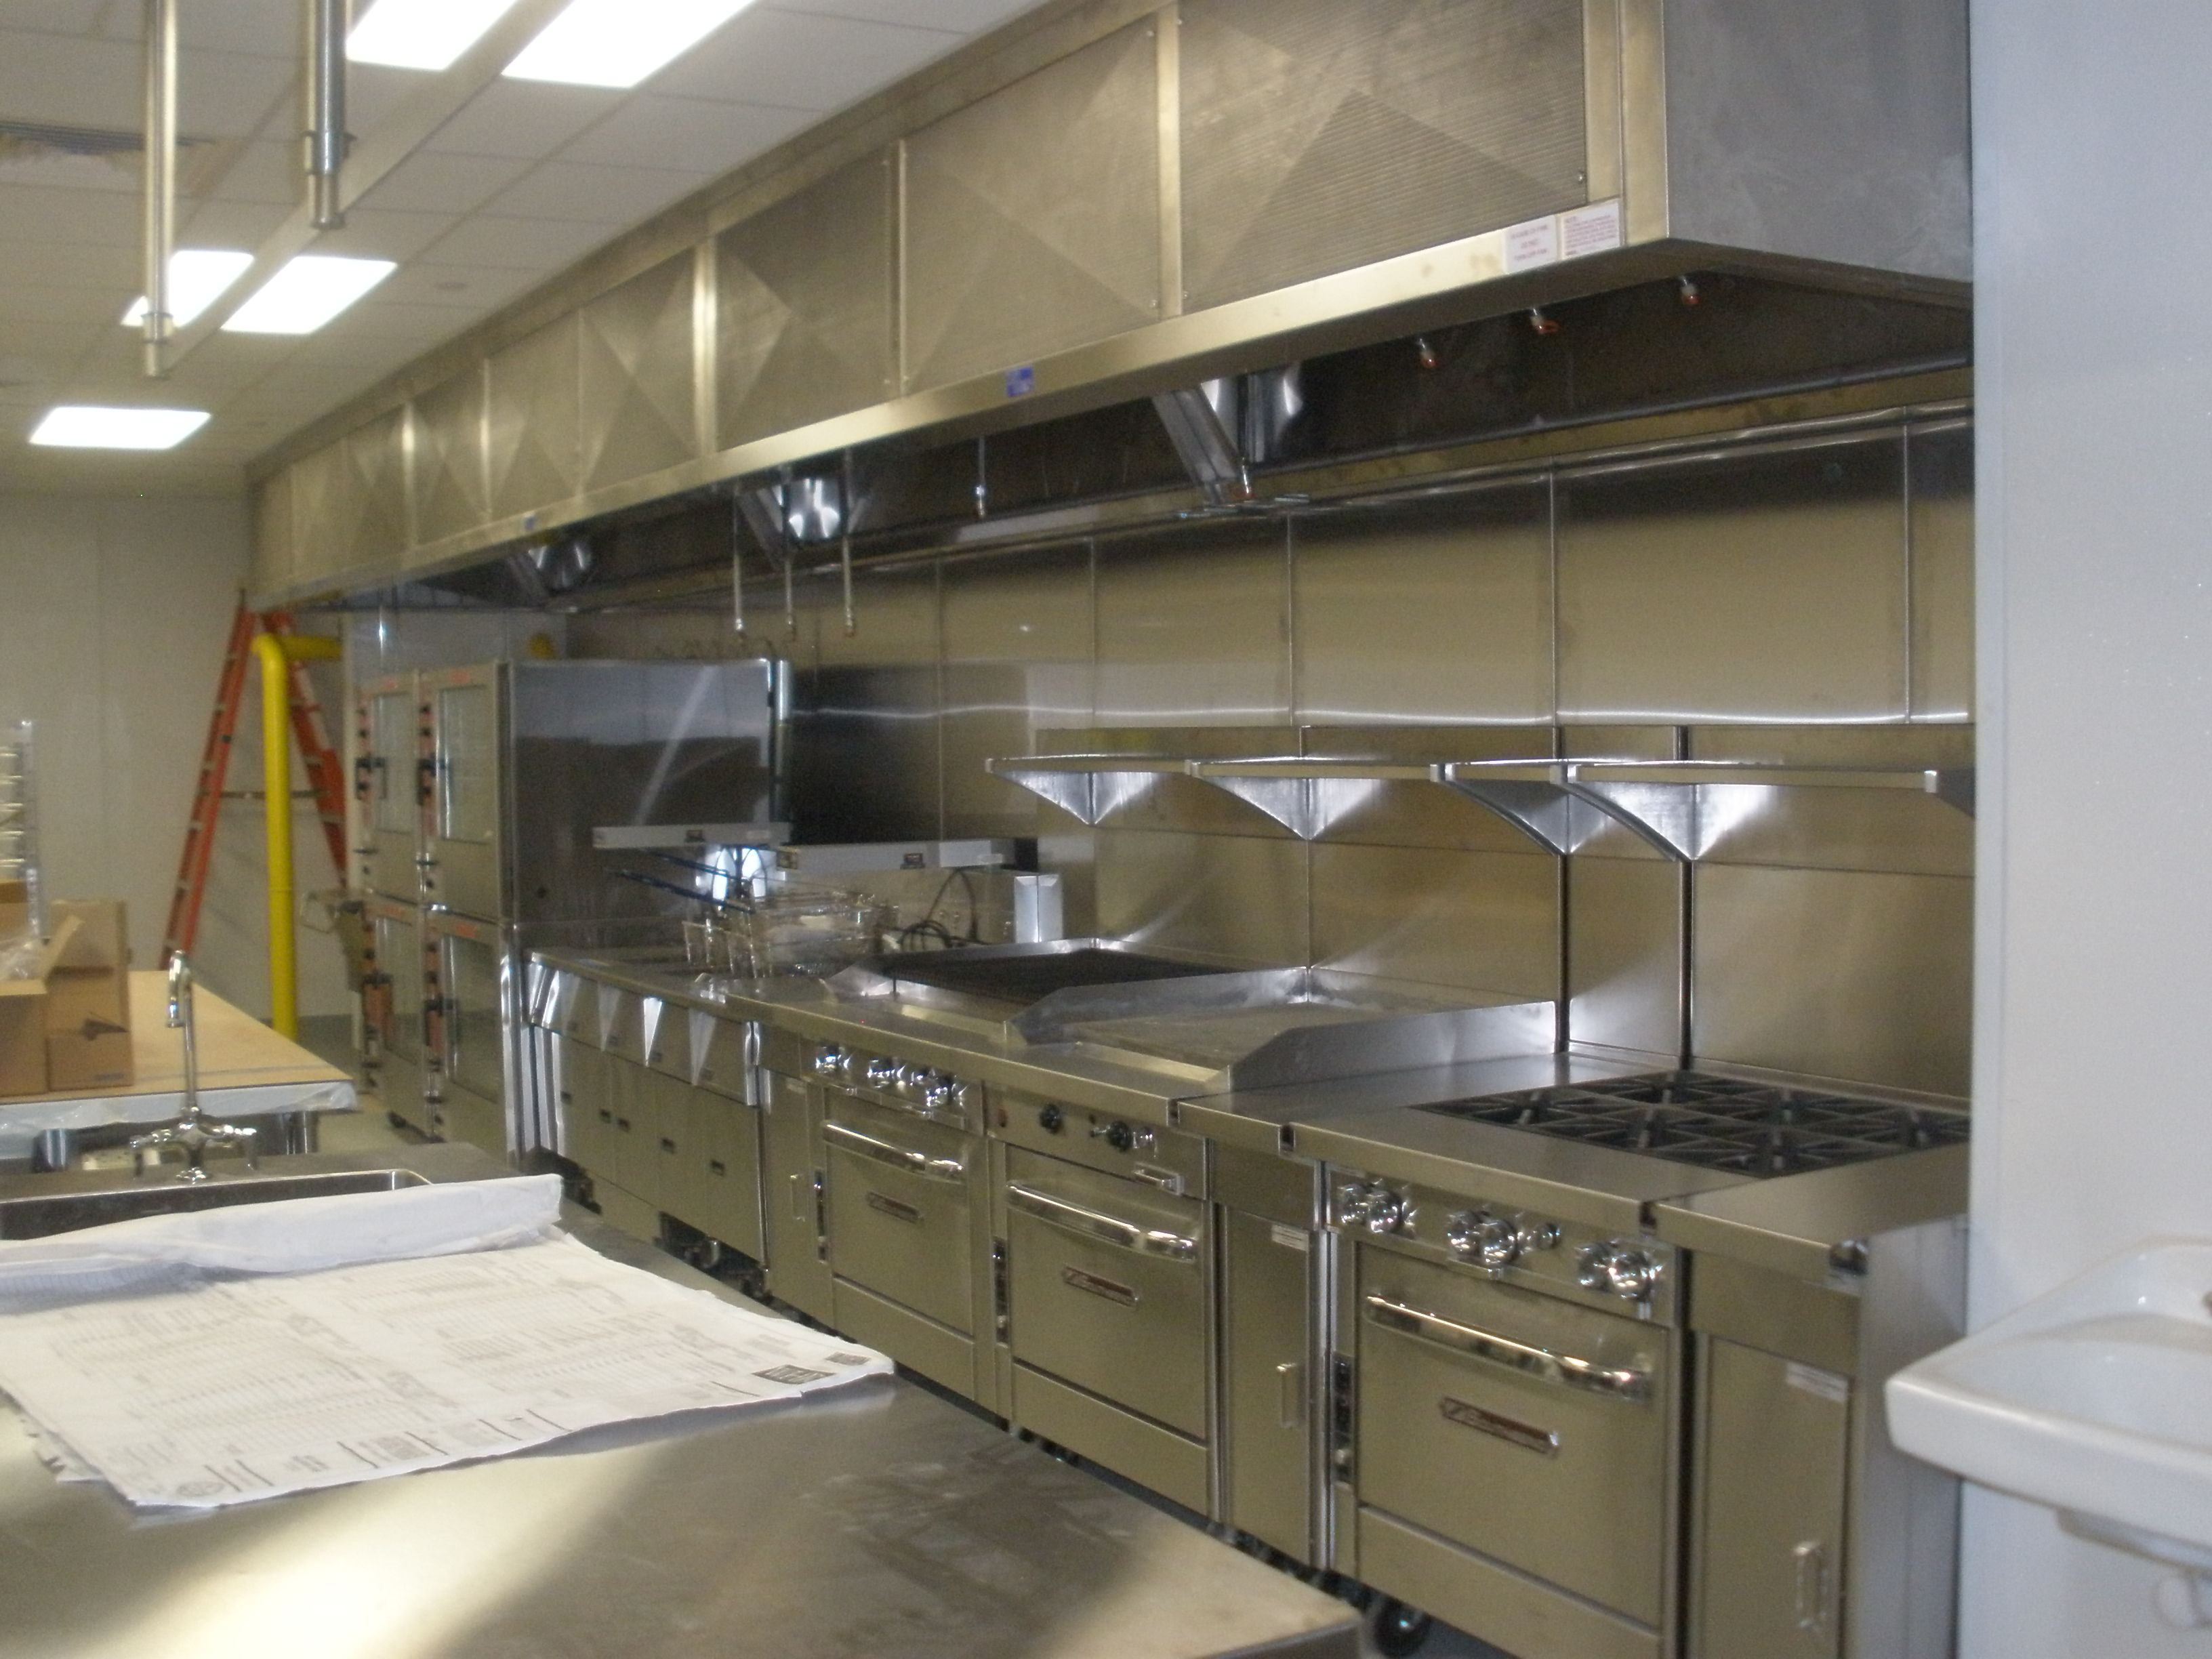 Small Restaurant Kitchen Layout Ideas Part - 16: Small Restaurant Kitchen Design With Stainless Steel Commercial Designers